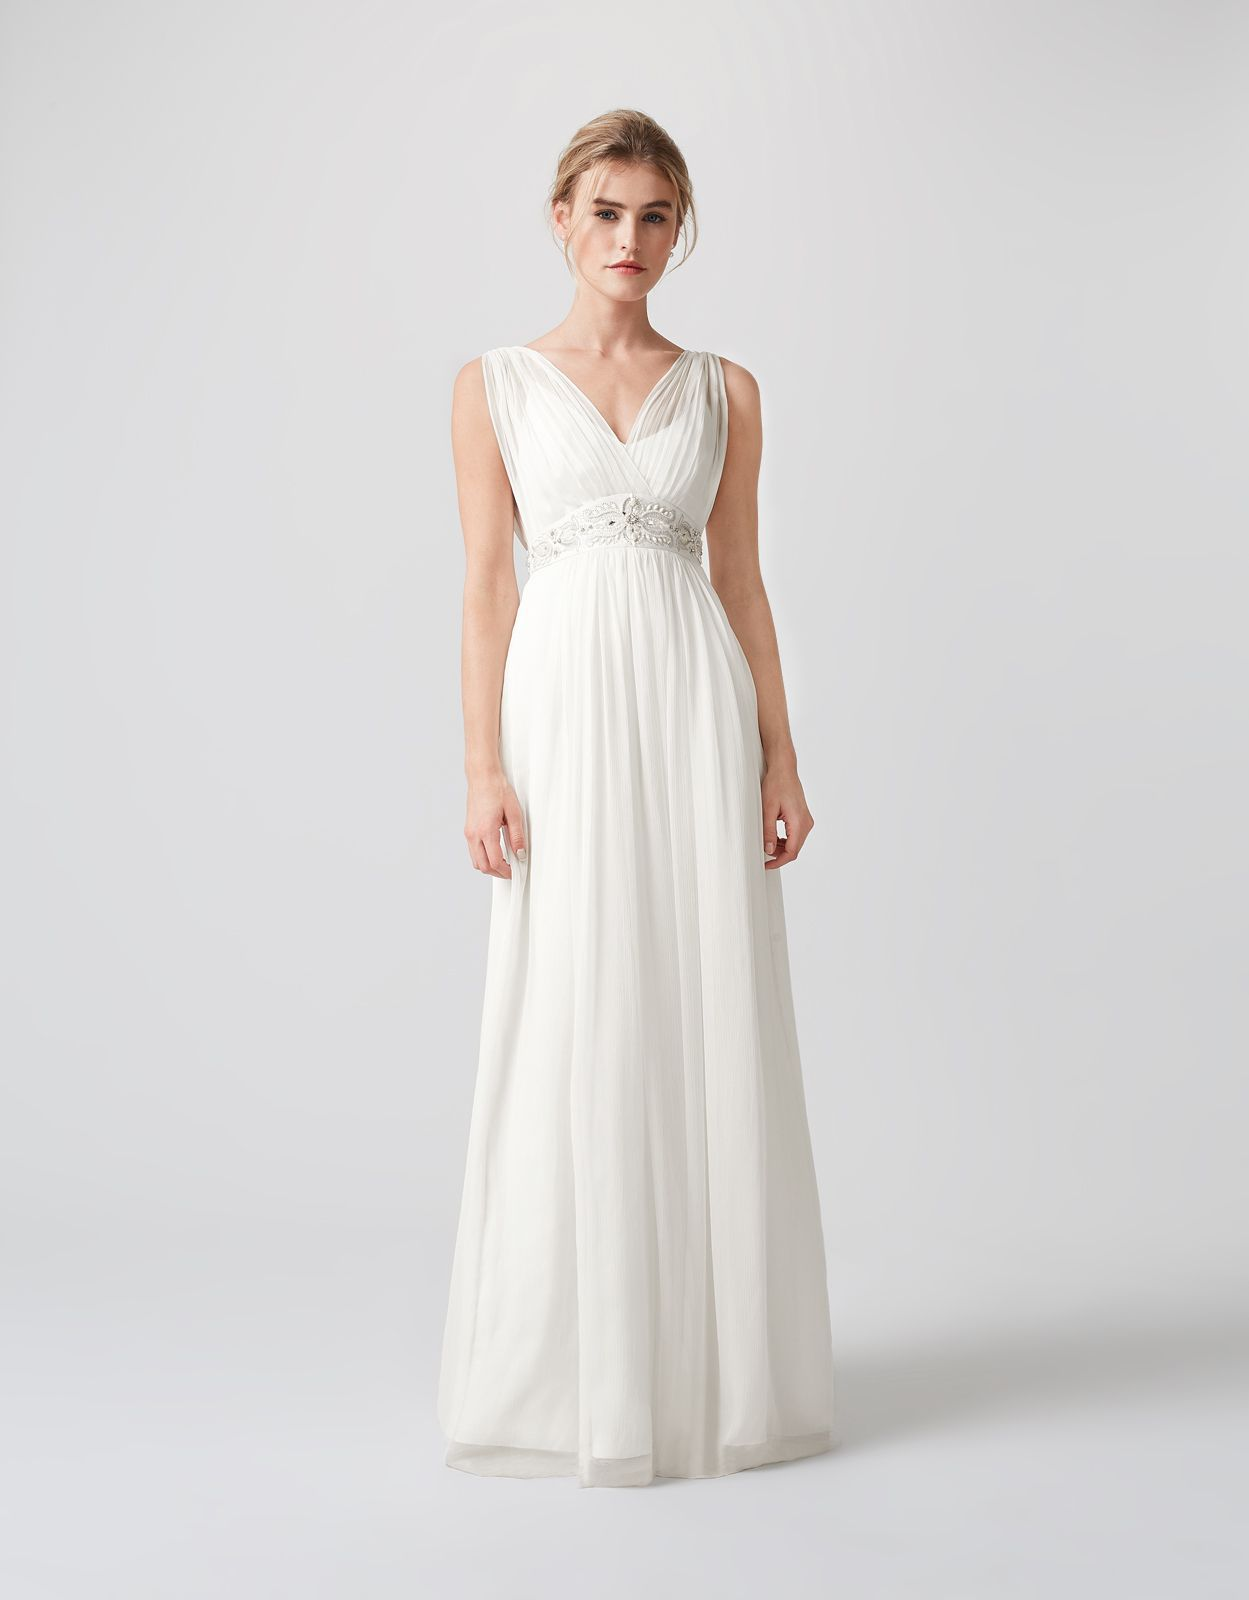 Channel boho romance in our ethereal lucia ivory wedding dress in a